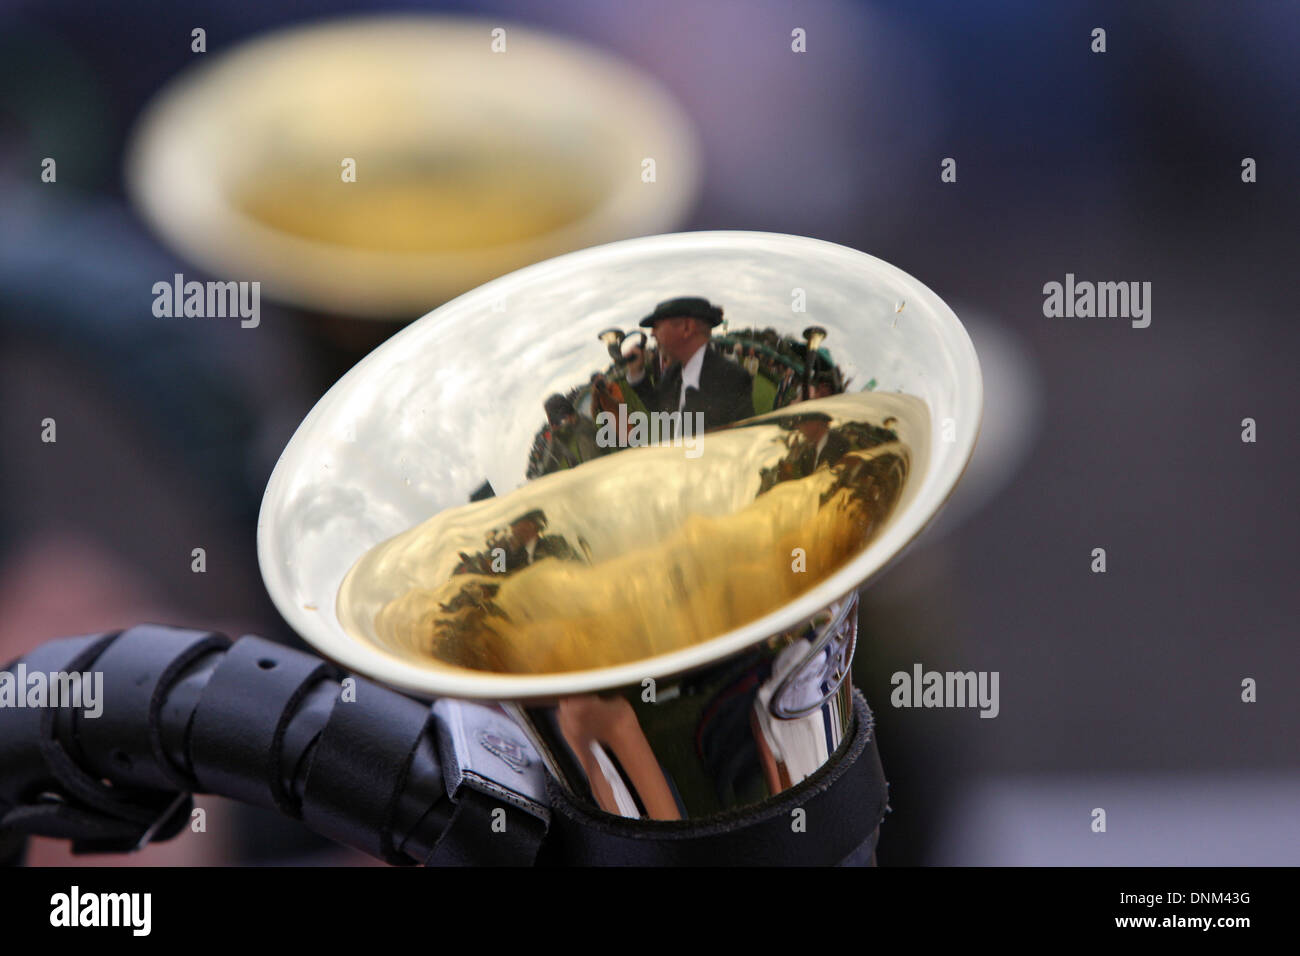 Hannover, Germany, Jagdhornbläser reflected in a hunting horn - Stock Image